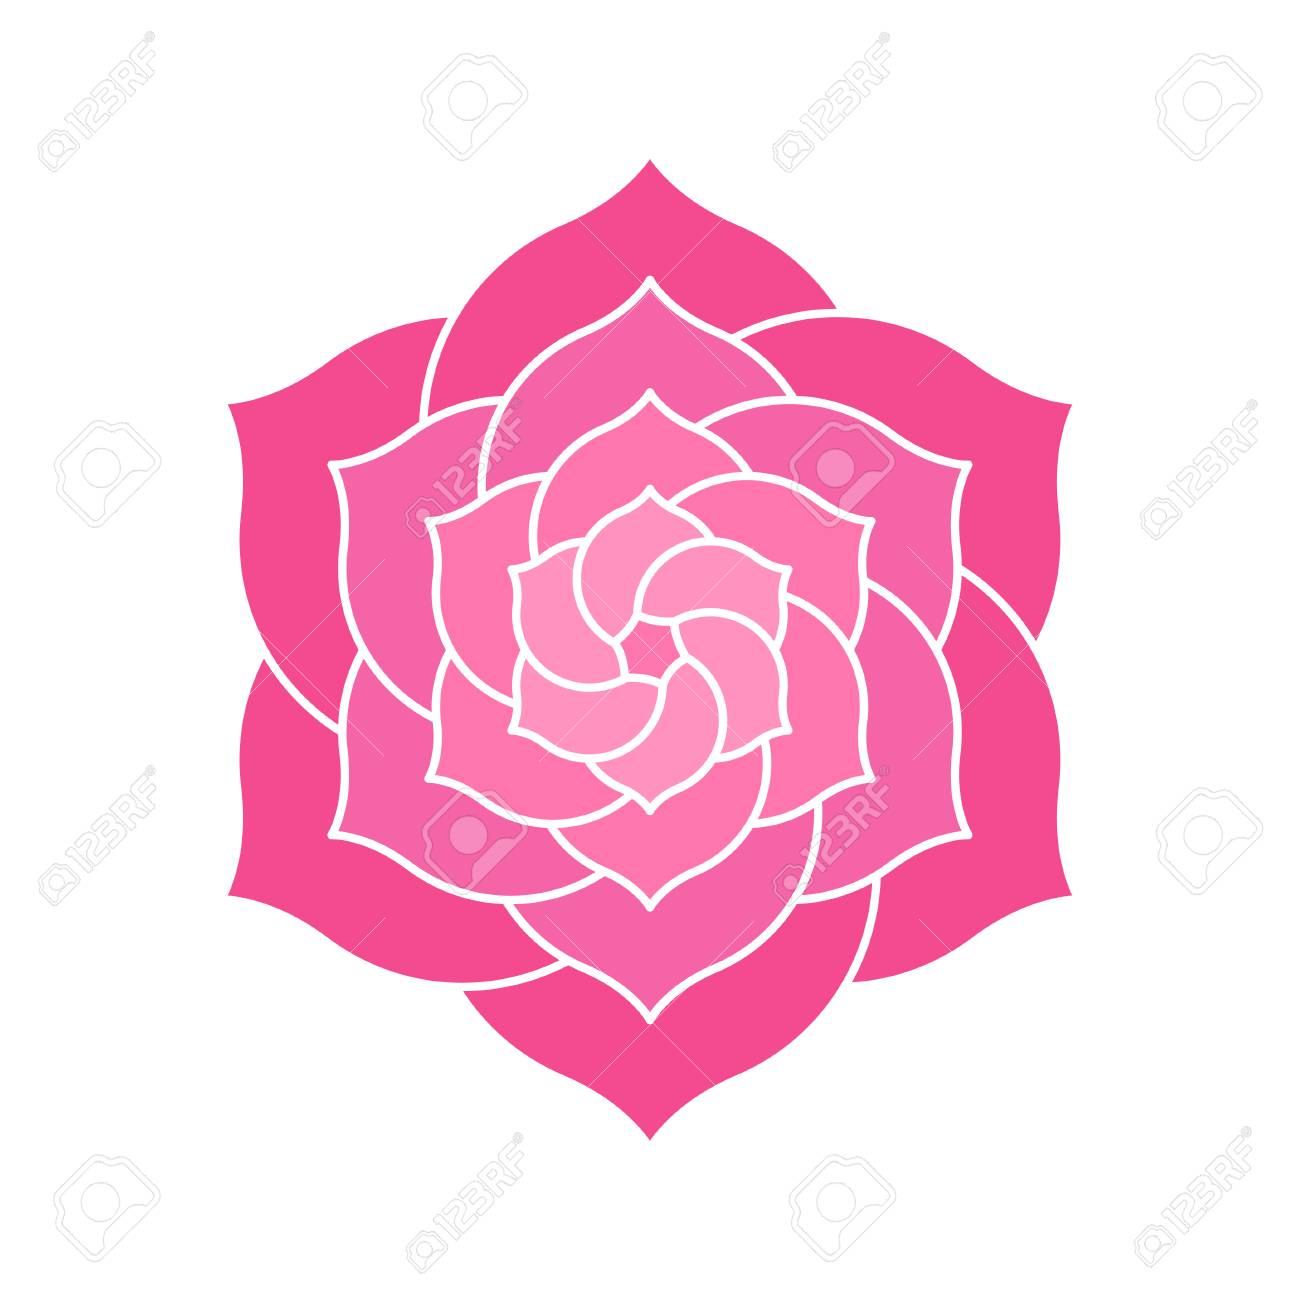 Elegant geometric lotus or camelia illustration. Abstract pink flower shape with many petals for logo design. - 108339199